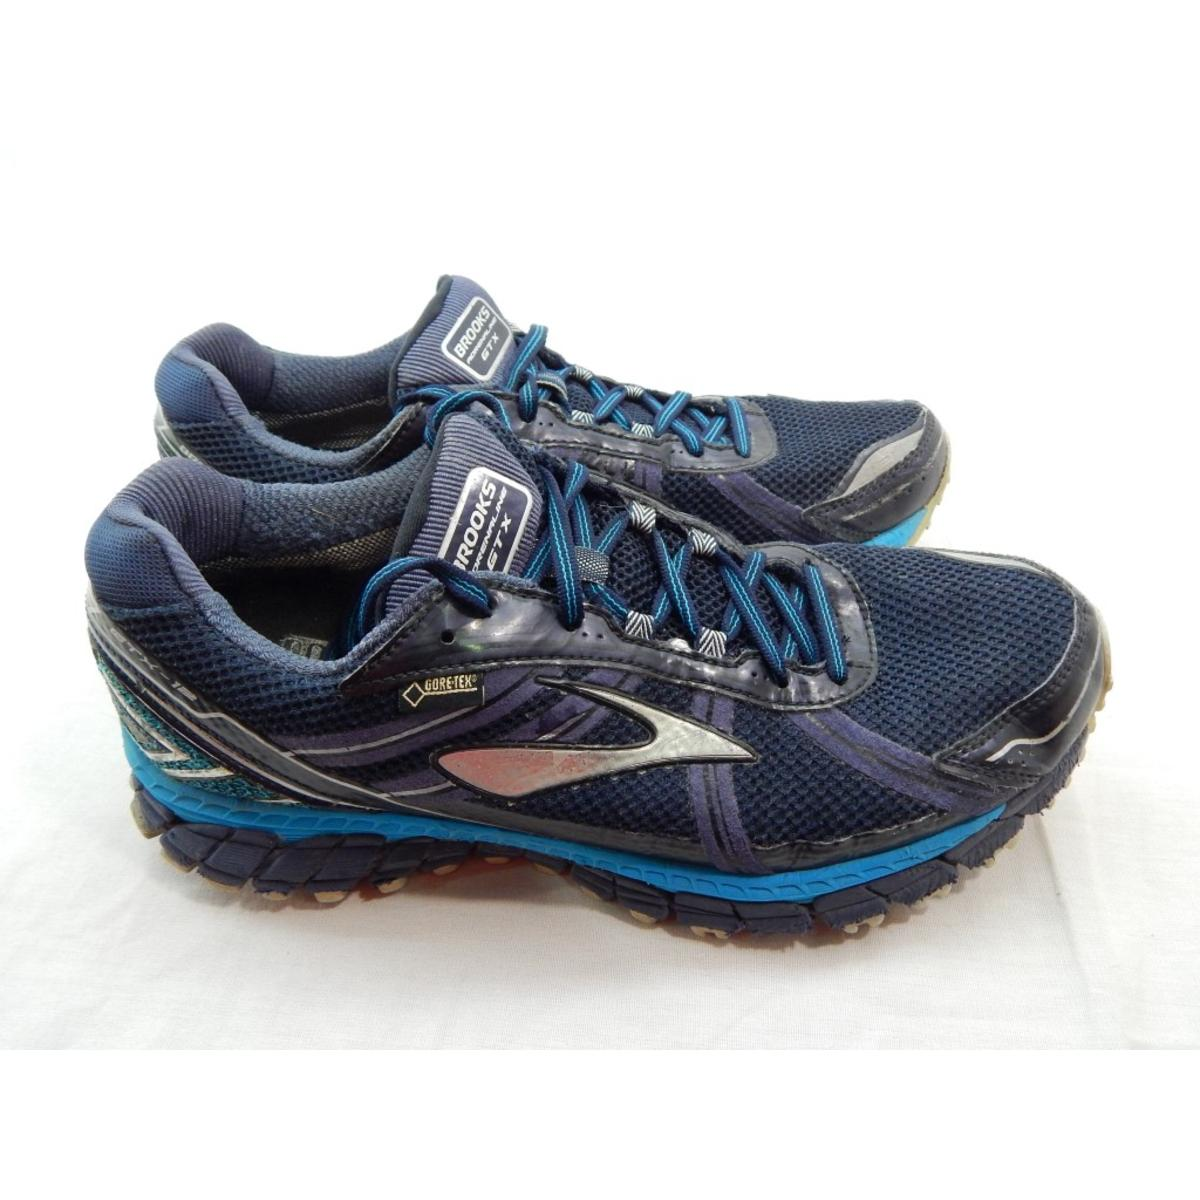 brooks adrenaline asr 12 gtx men 39 s peacoat atomic blue running shoe 10 5m ebay. Black Bedroom Furniture Sets. Home Design Ideas